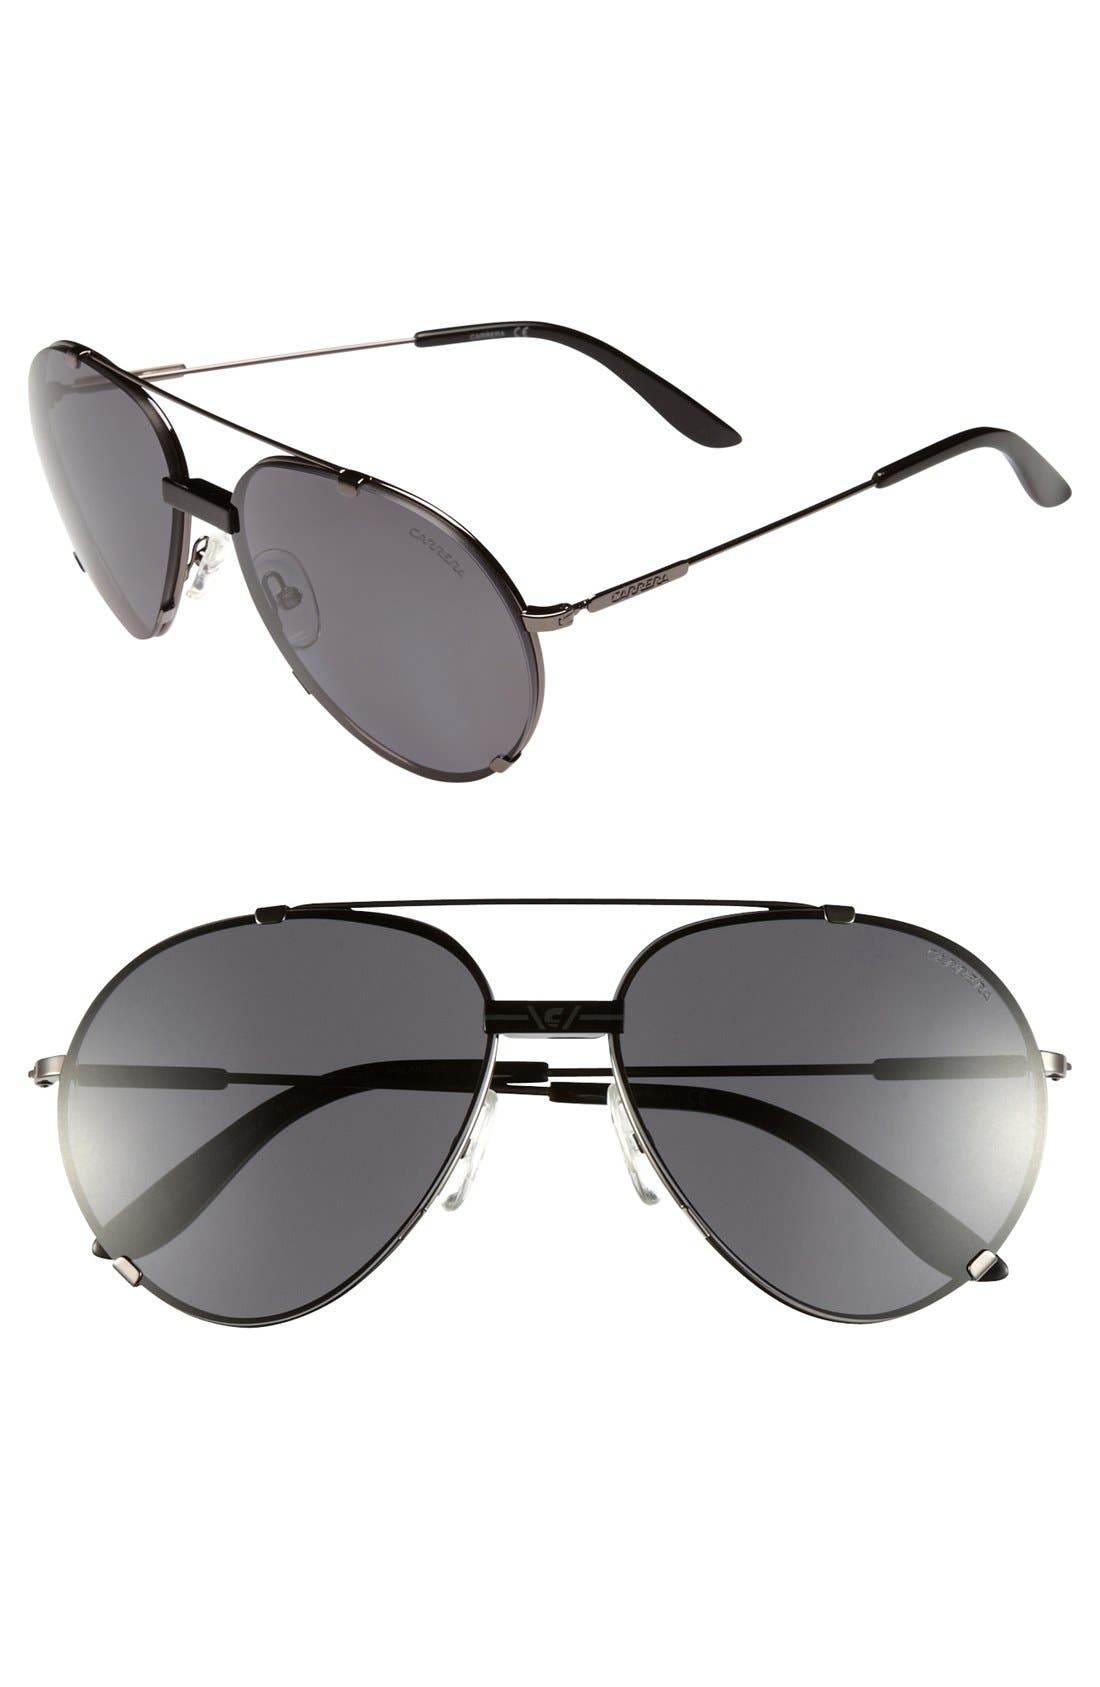 Main Image - Carrera Eyewear 60mm Aviator Sunglasses